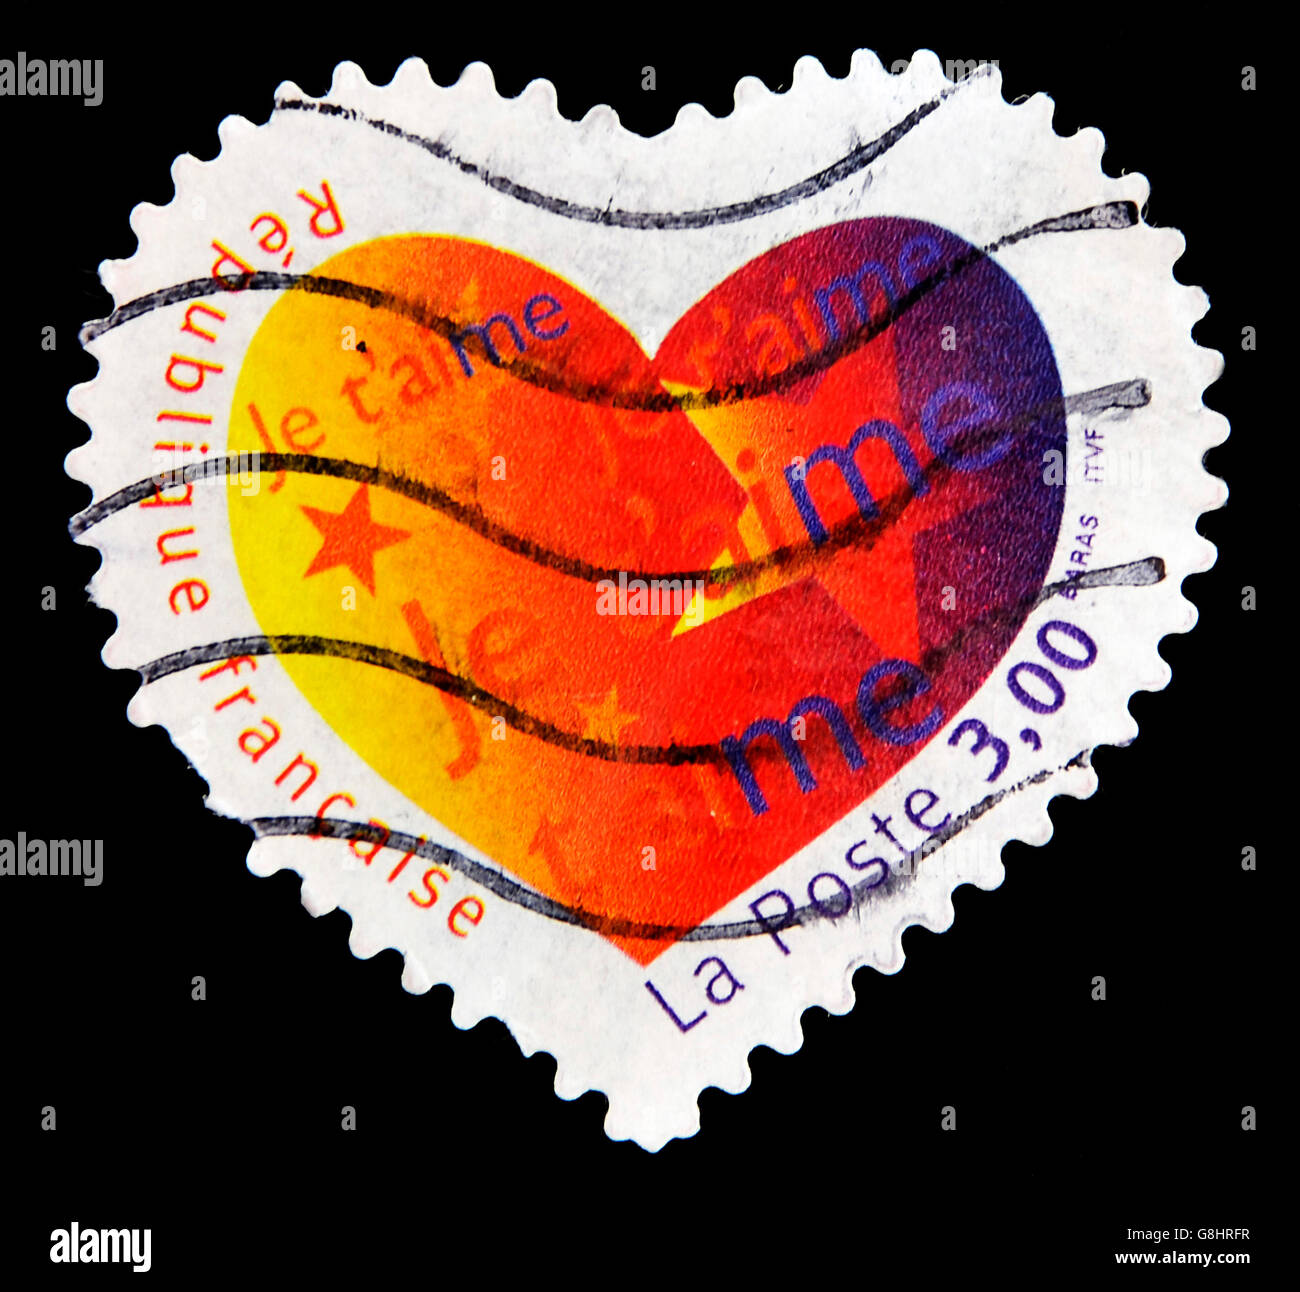 FRANCE - CIRCA 2003: A Heart Shaped Stamp with the word love you in French, circa 2003 - Stock Image